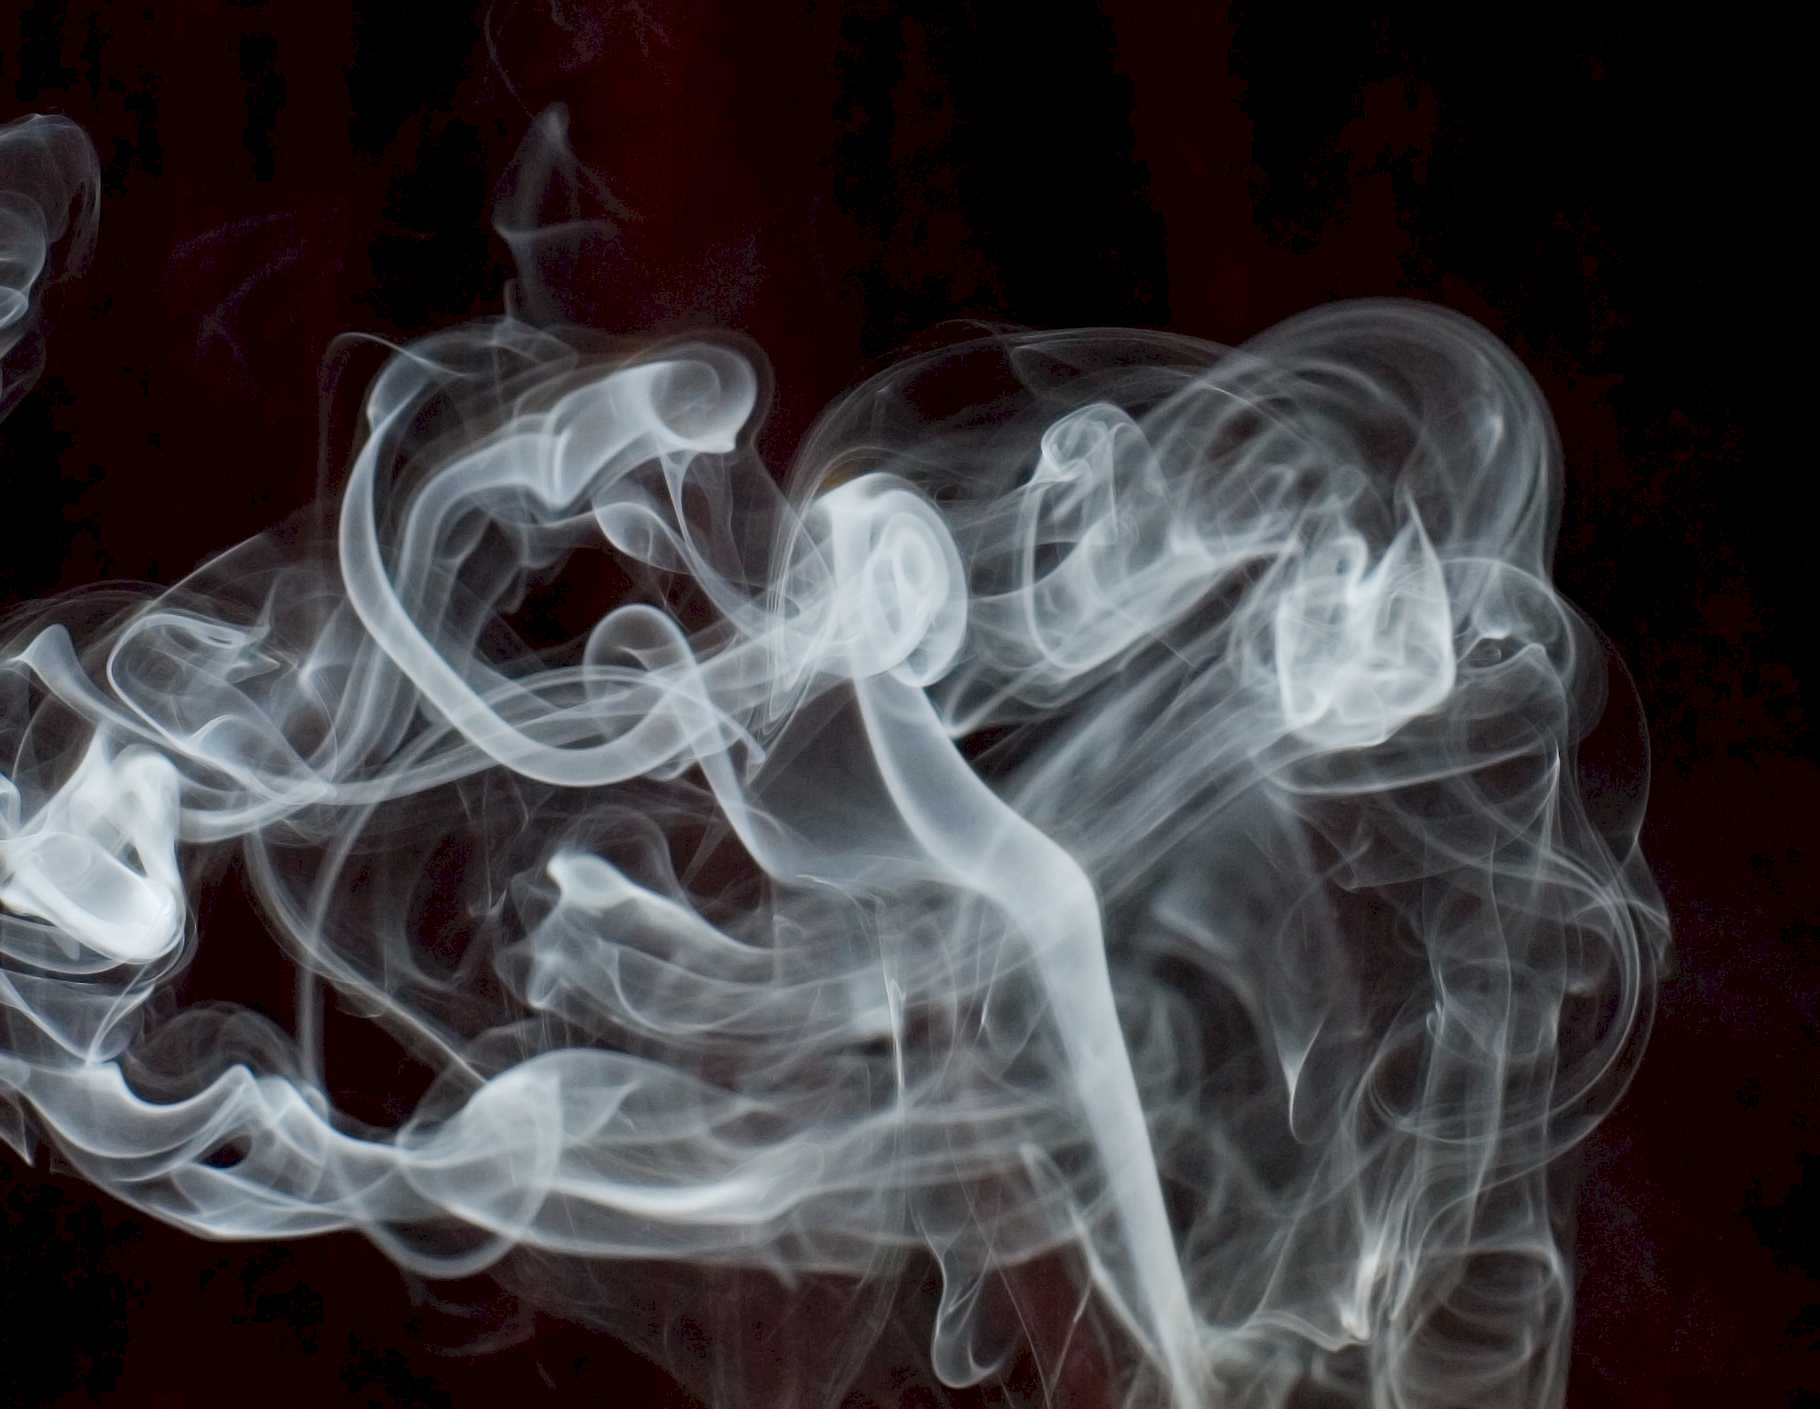 See through the smoke with WhiteSmoke's grammar check.